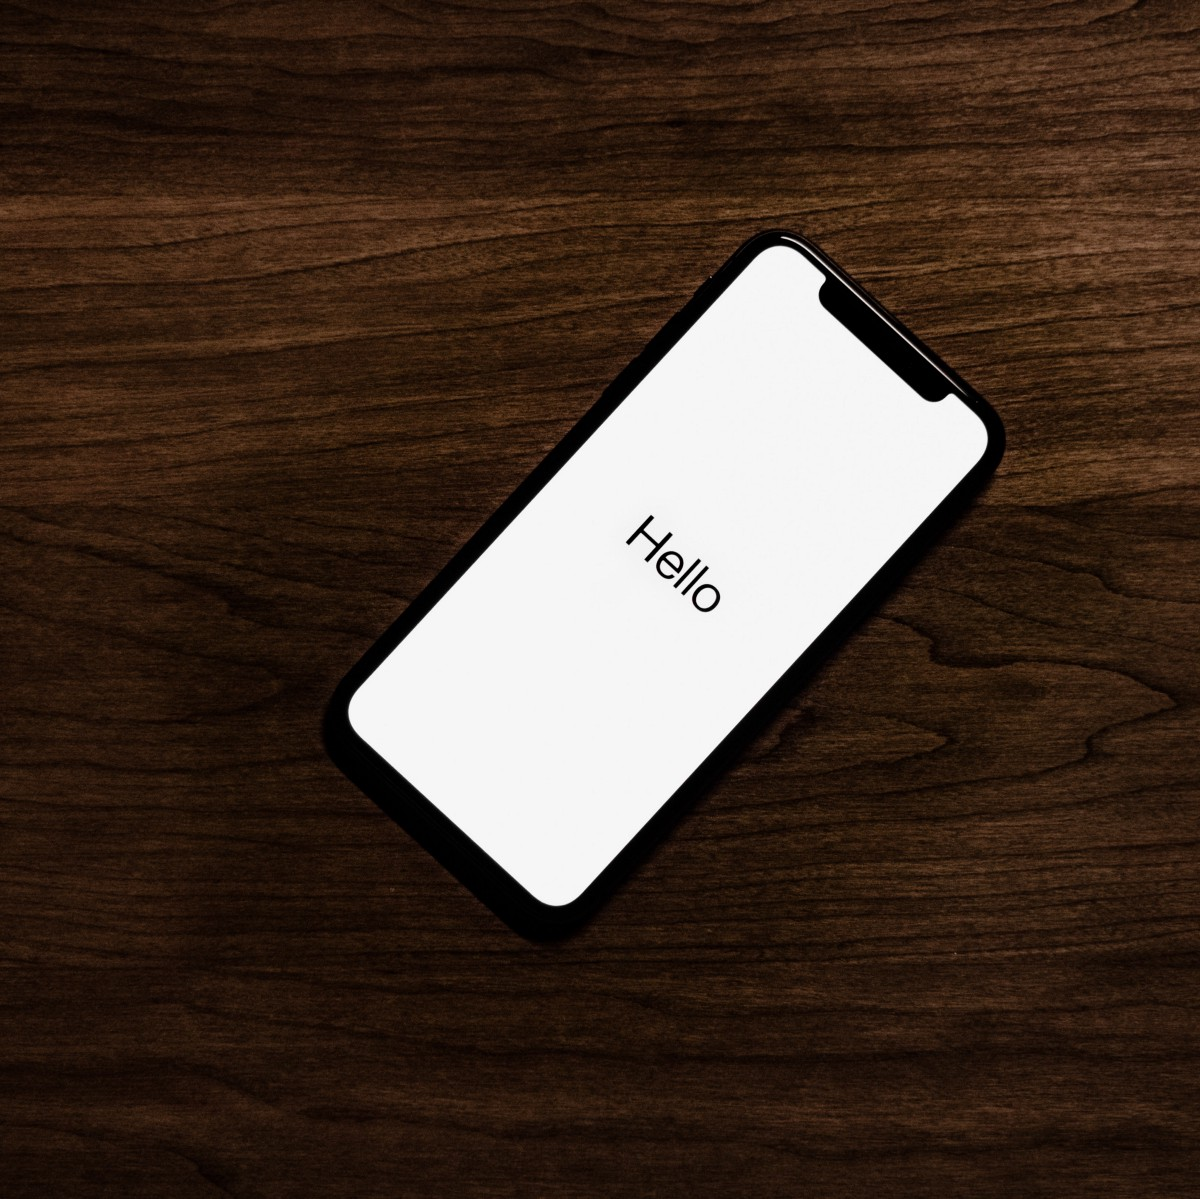 Set Up a Minimalistic iPhone and Use It With Purpose